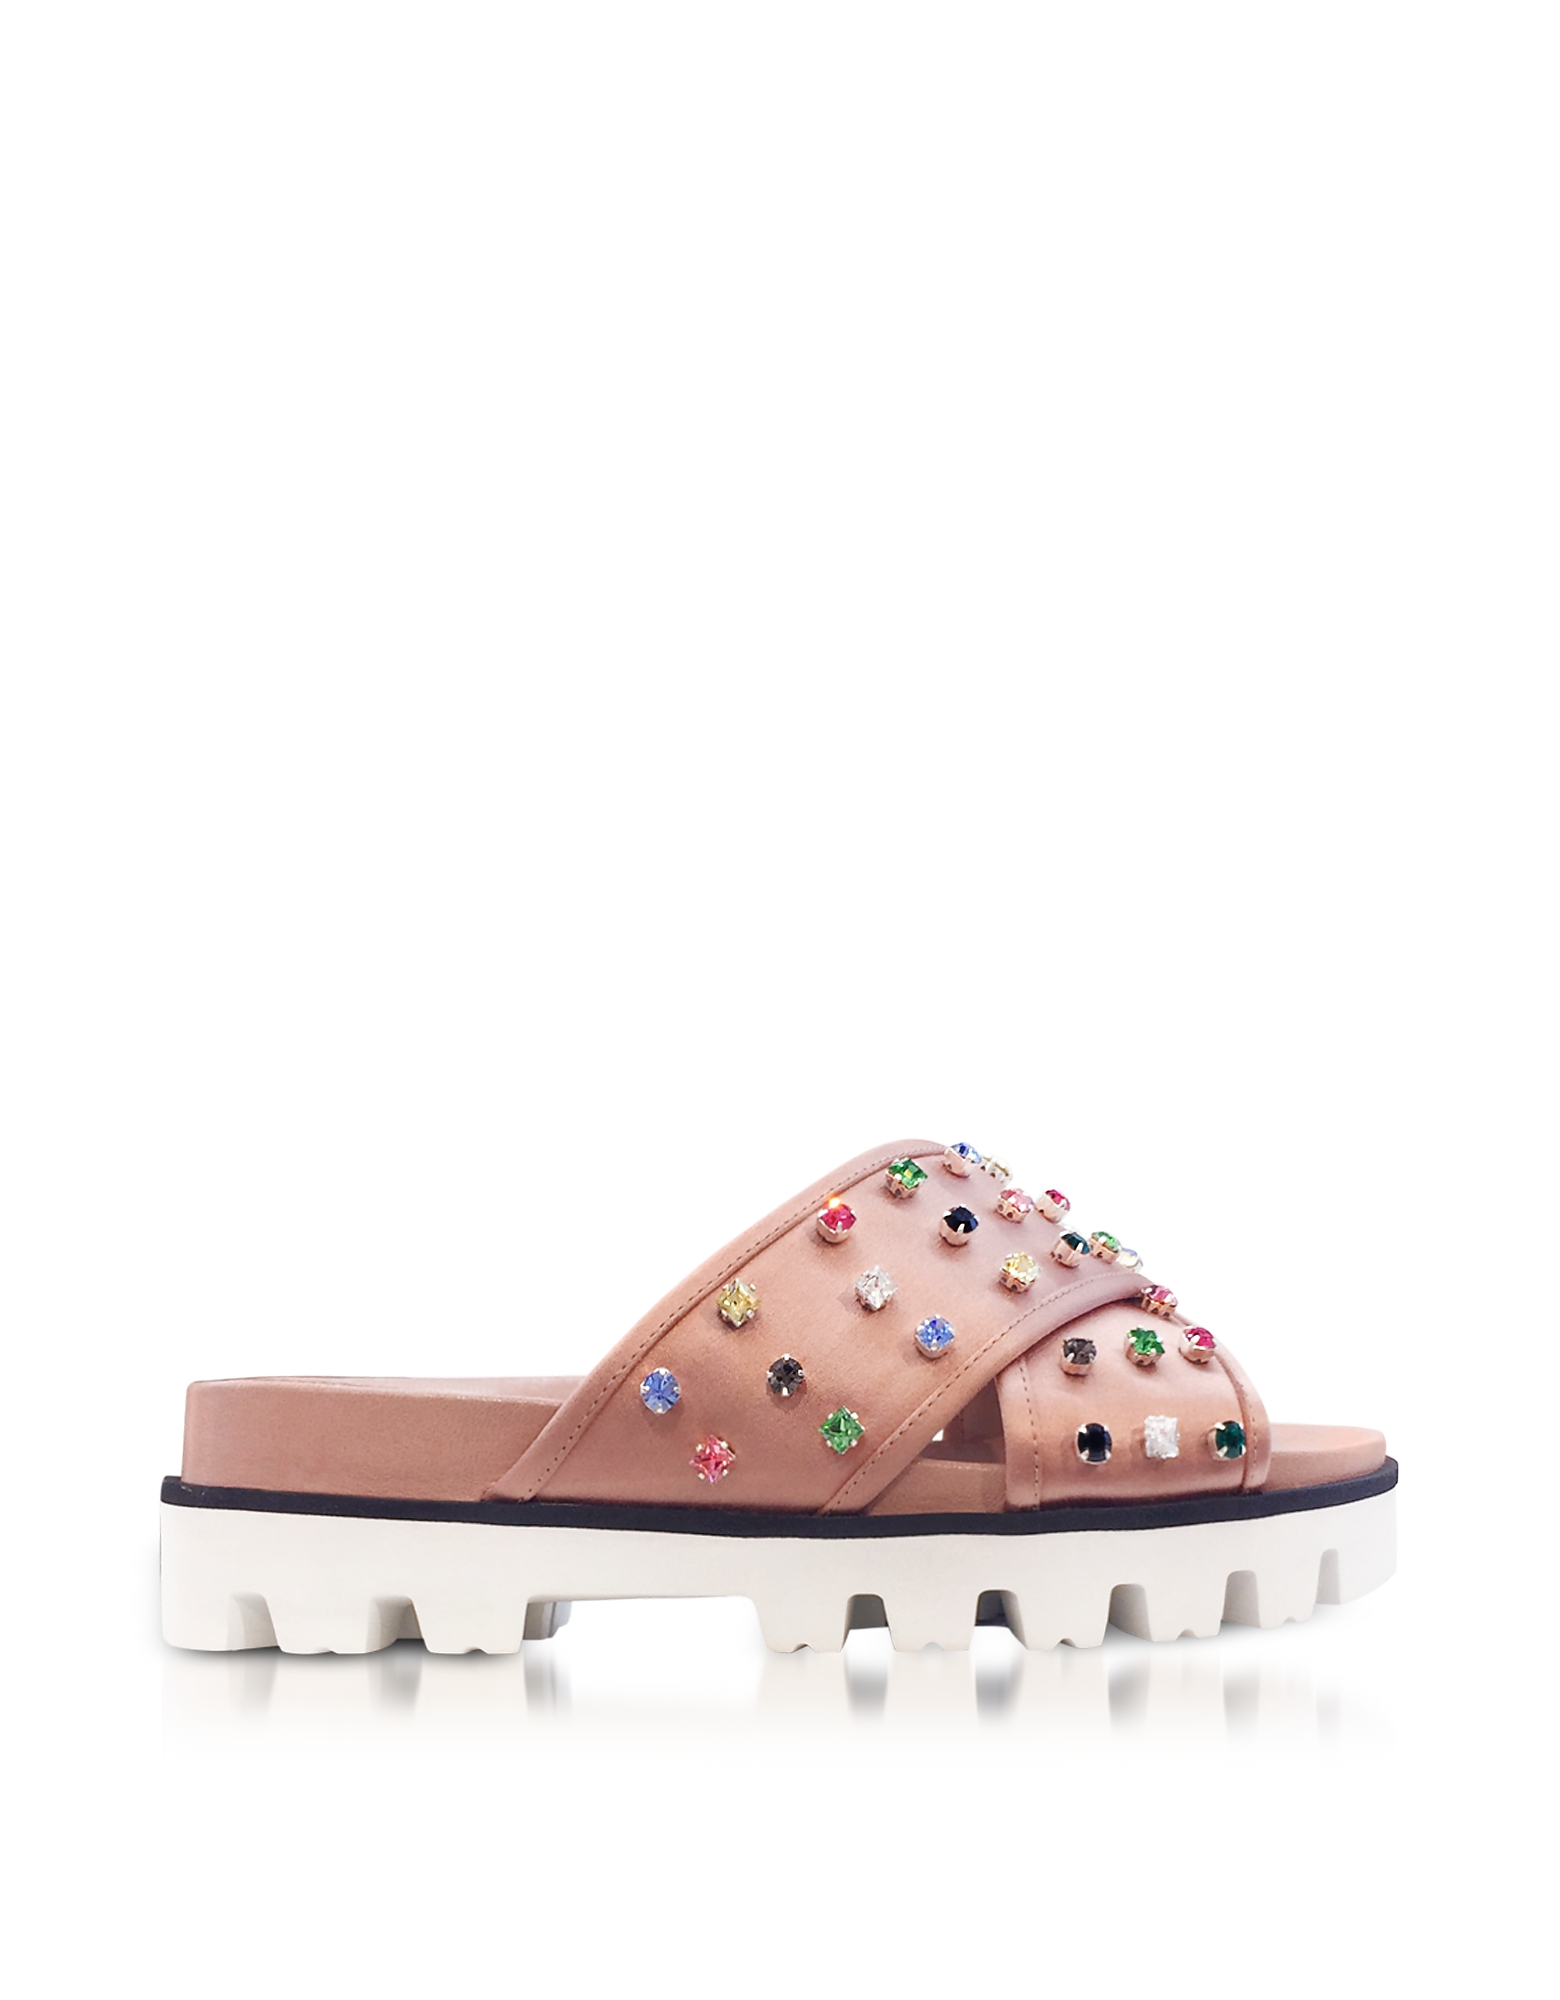 RED Valentino Shoes, Cammeo Canvas Slide Sandals w/Crystals